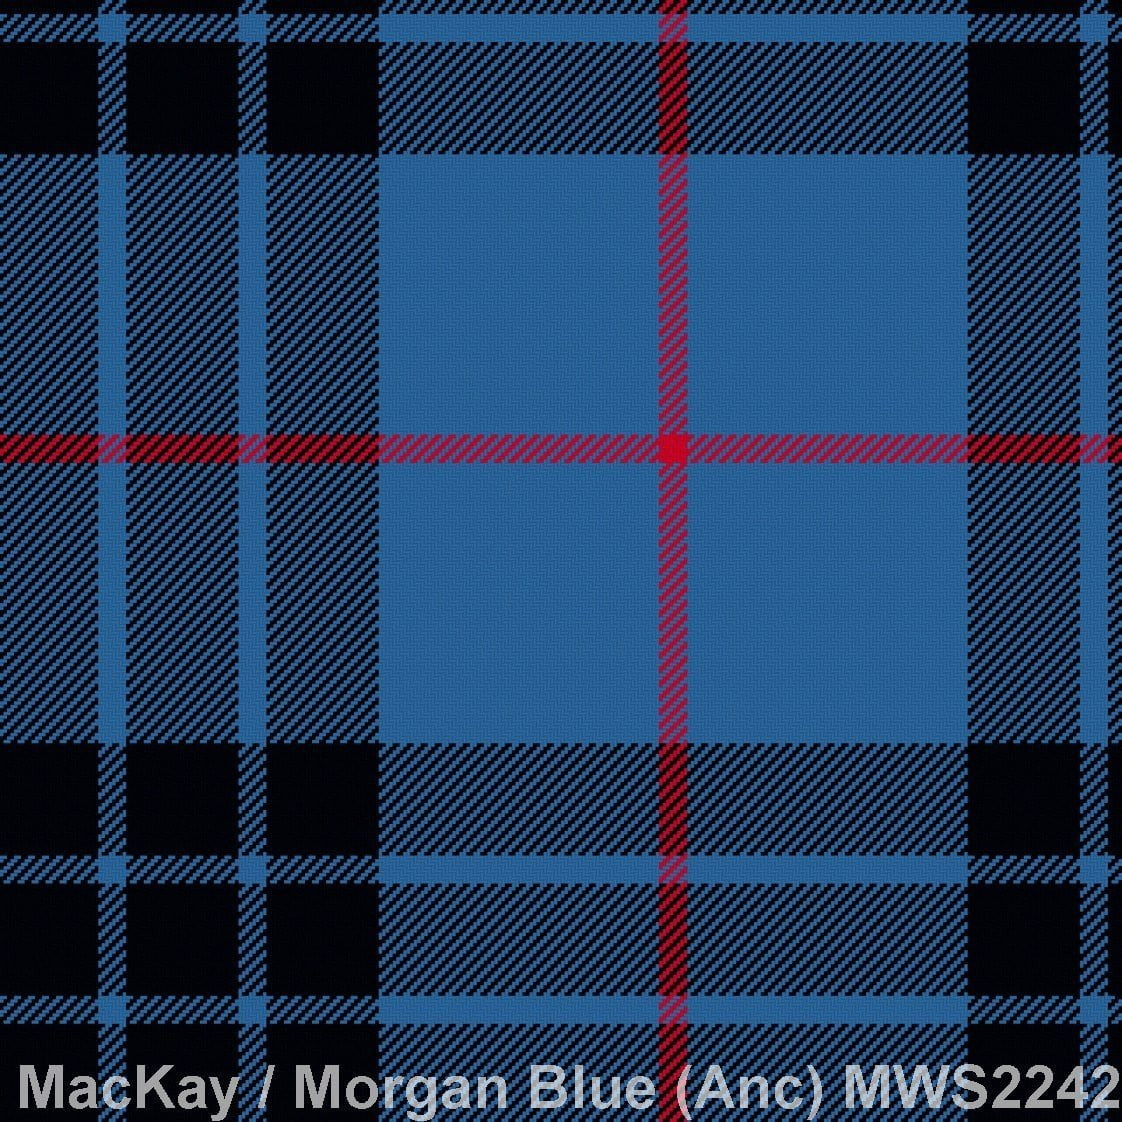 MacKay/Morgan Blue Ancient